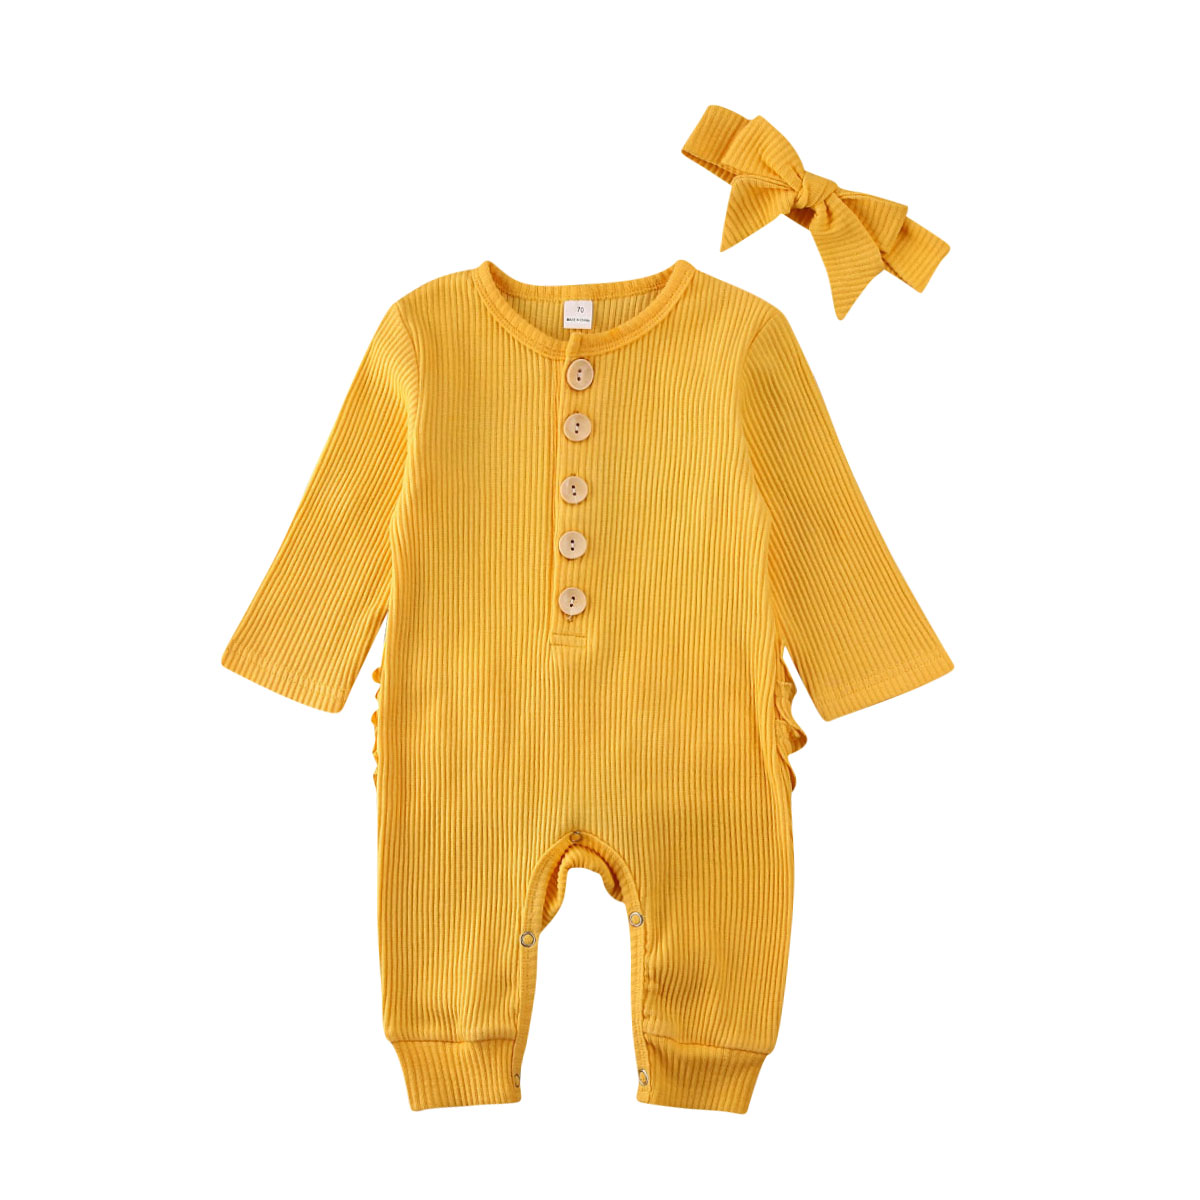 2020 Brand New Newborn Toddler Baby Boy Girls Romper Jumpsuit Playsuit Knitted Headband Outfits Set 0-18M